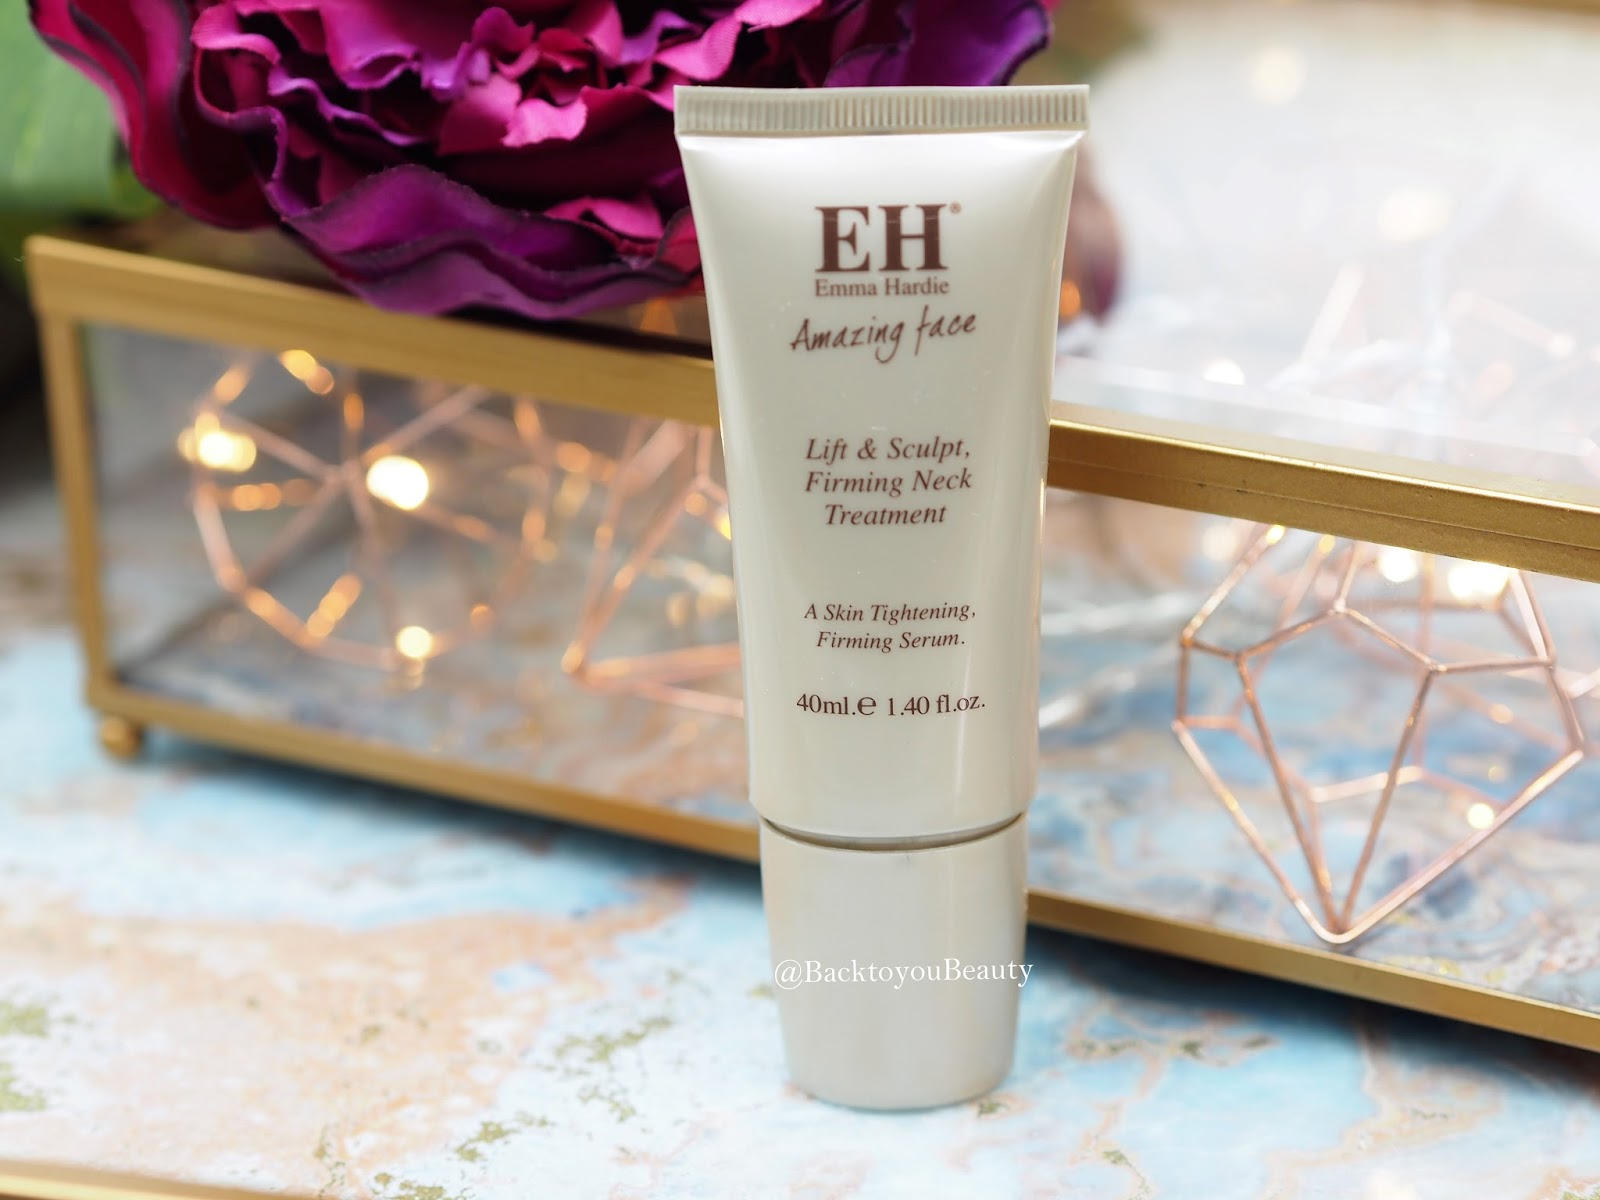 Emma Hardie Neck, Lift, Sculpt Firming Treatment